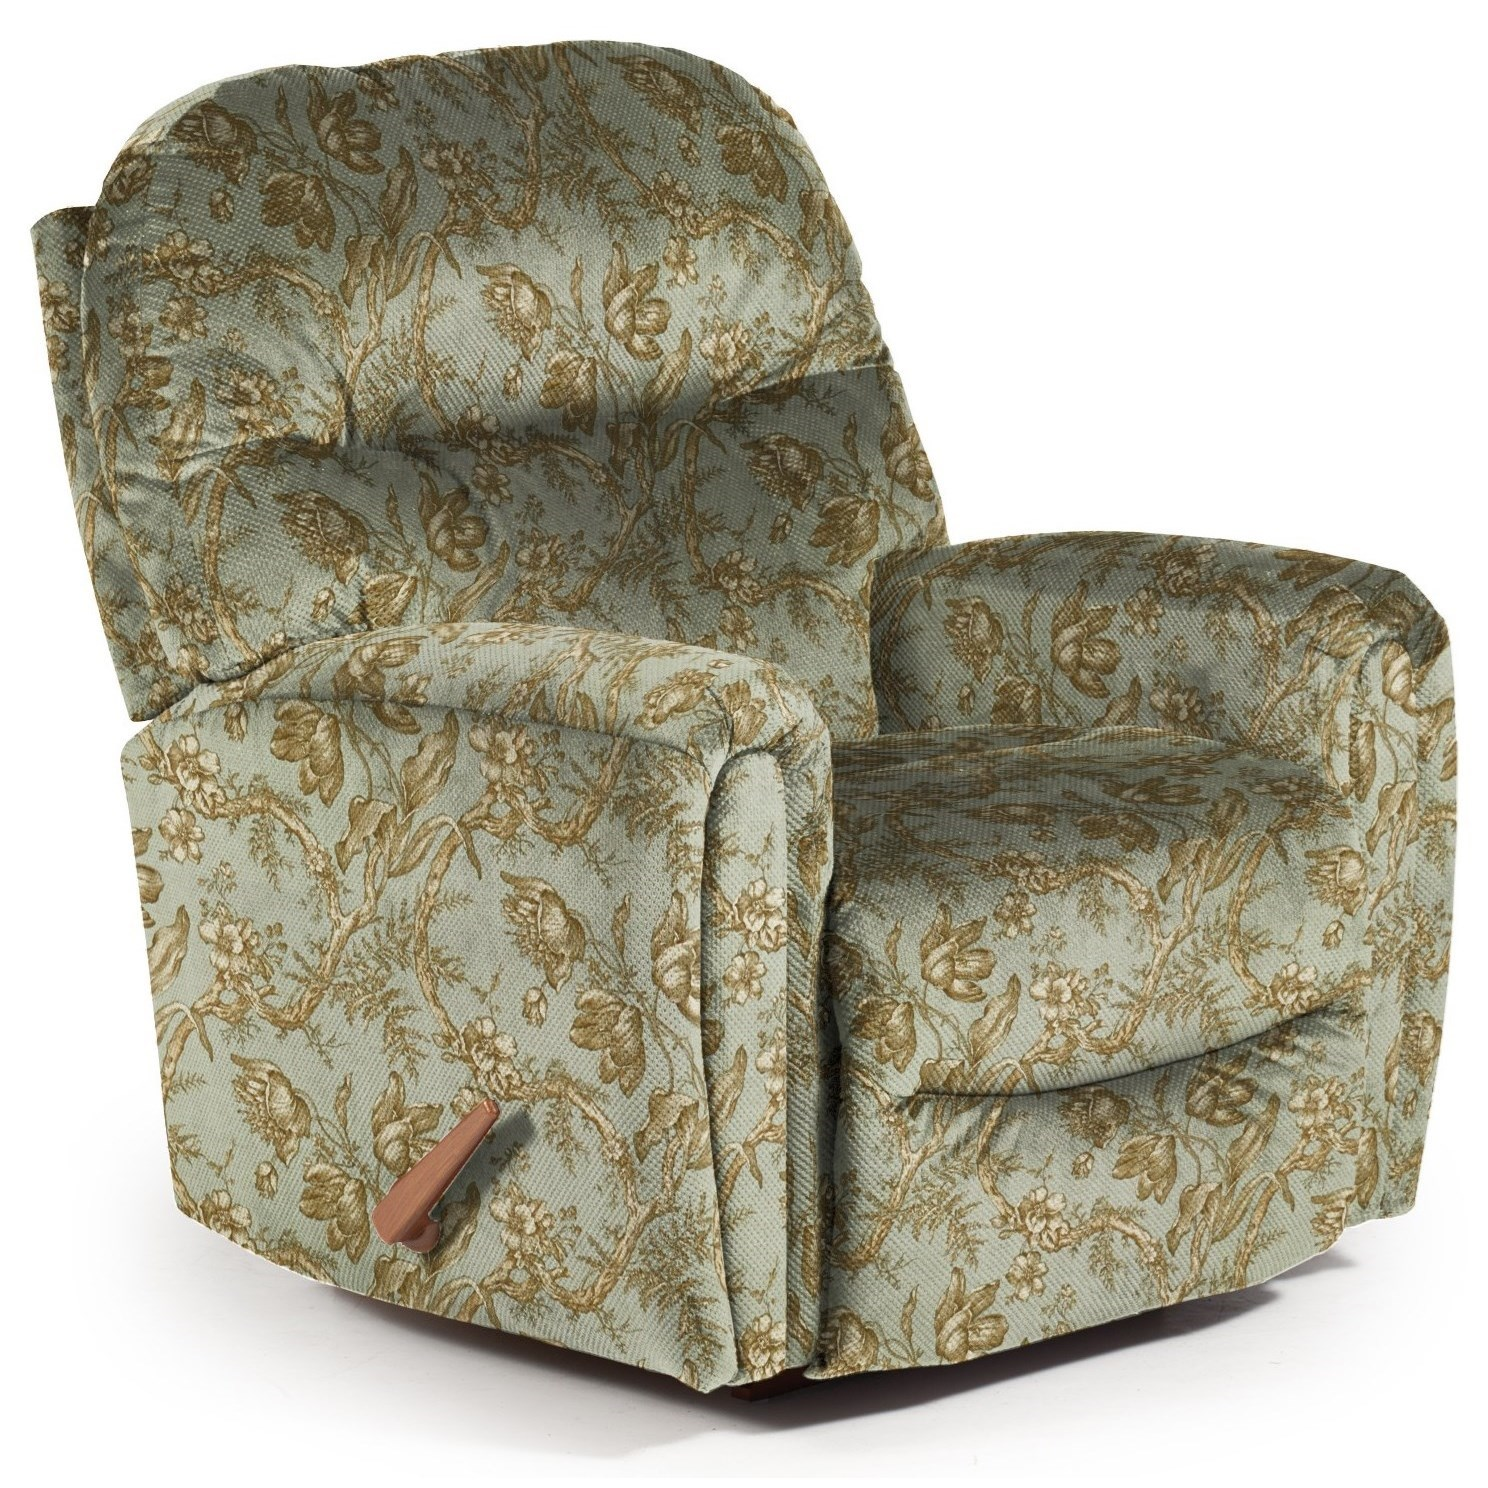 Best Home Furnishings Recliners - Medium Markson Power Space Saver Recliner - Item Number: 653357800-34412